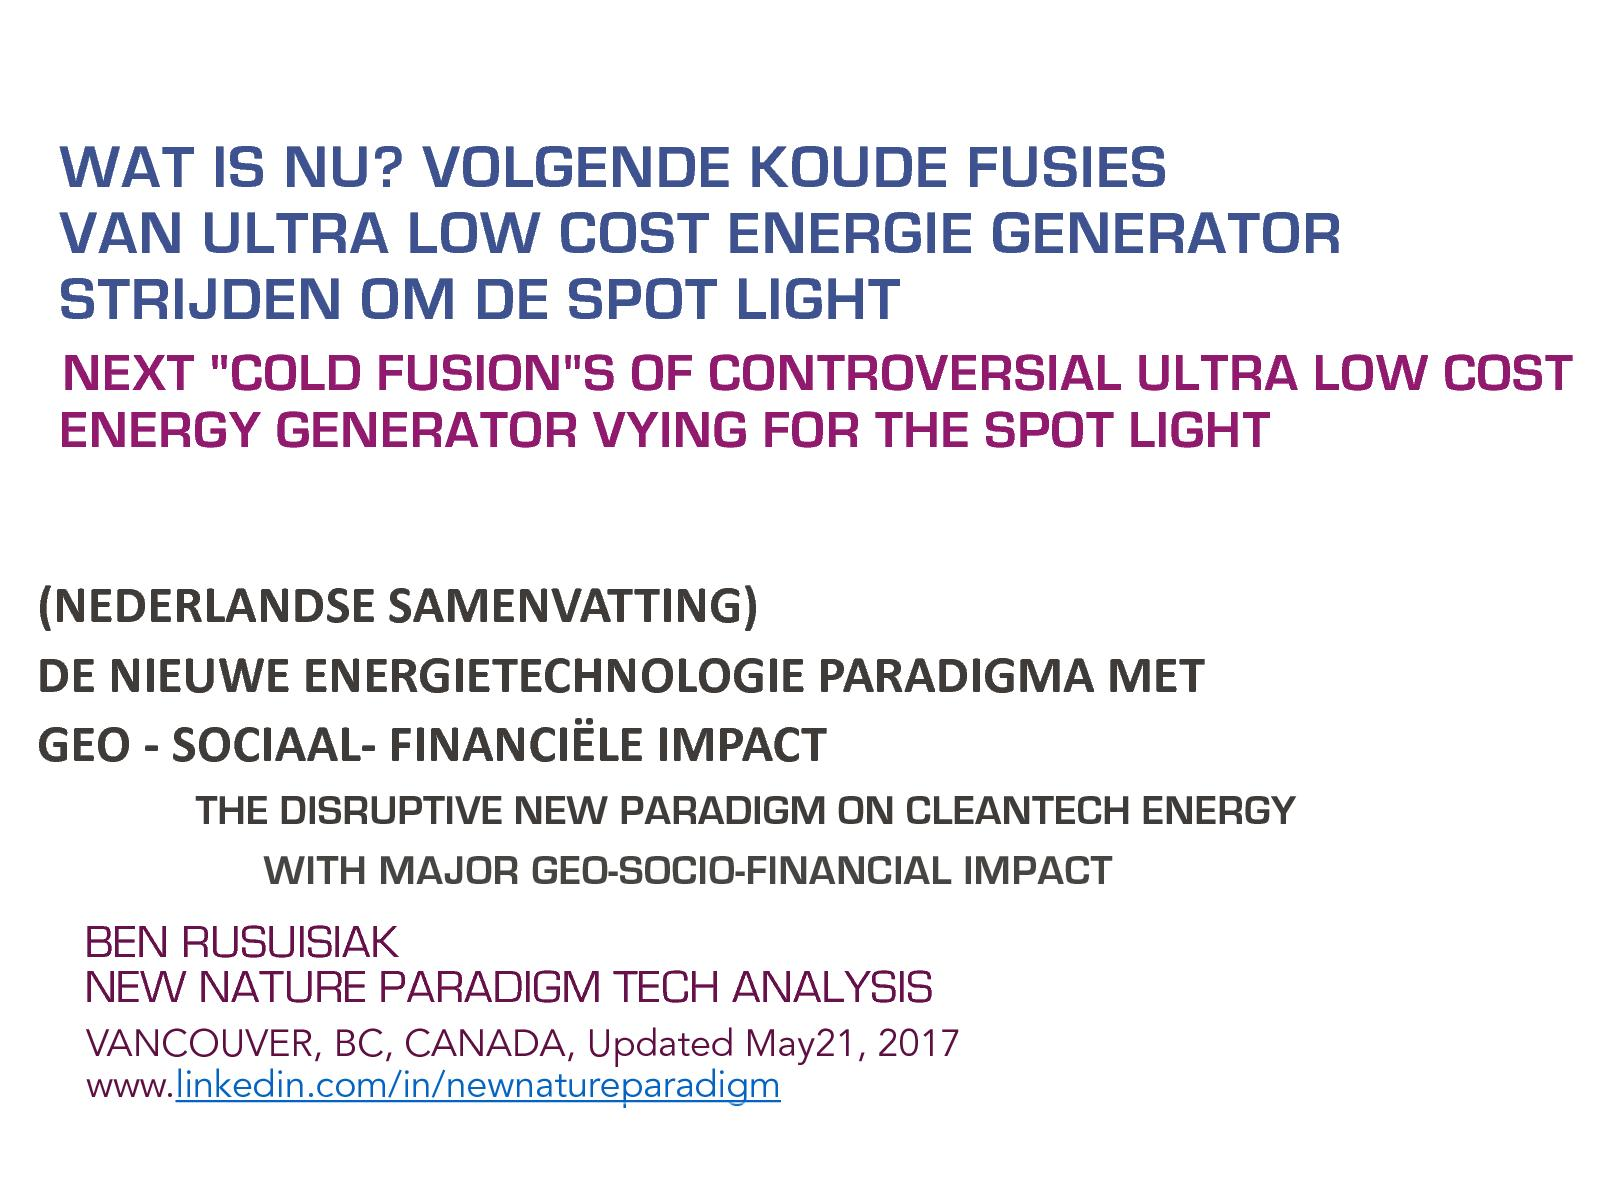 Calamo Koude Kernfusie Vrije Energie Pseudo Wetenschap Polarity Using Reed Switches And Relays Electronics Forum Circuits Cold Fusion Free Energy Science